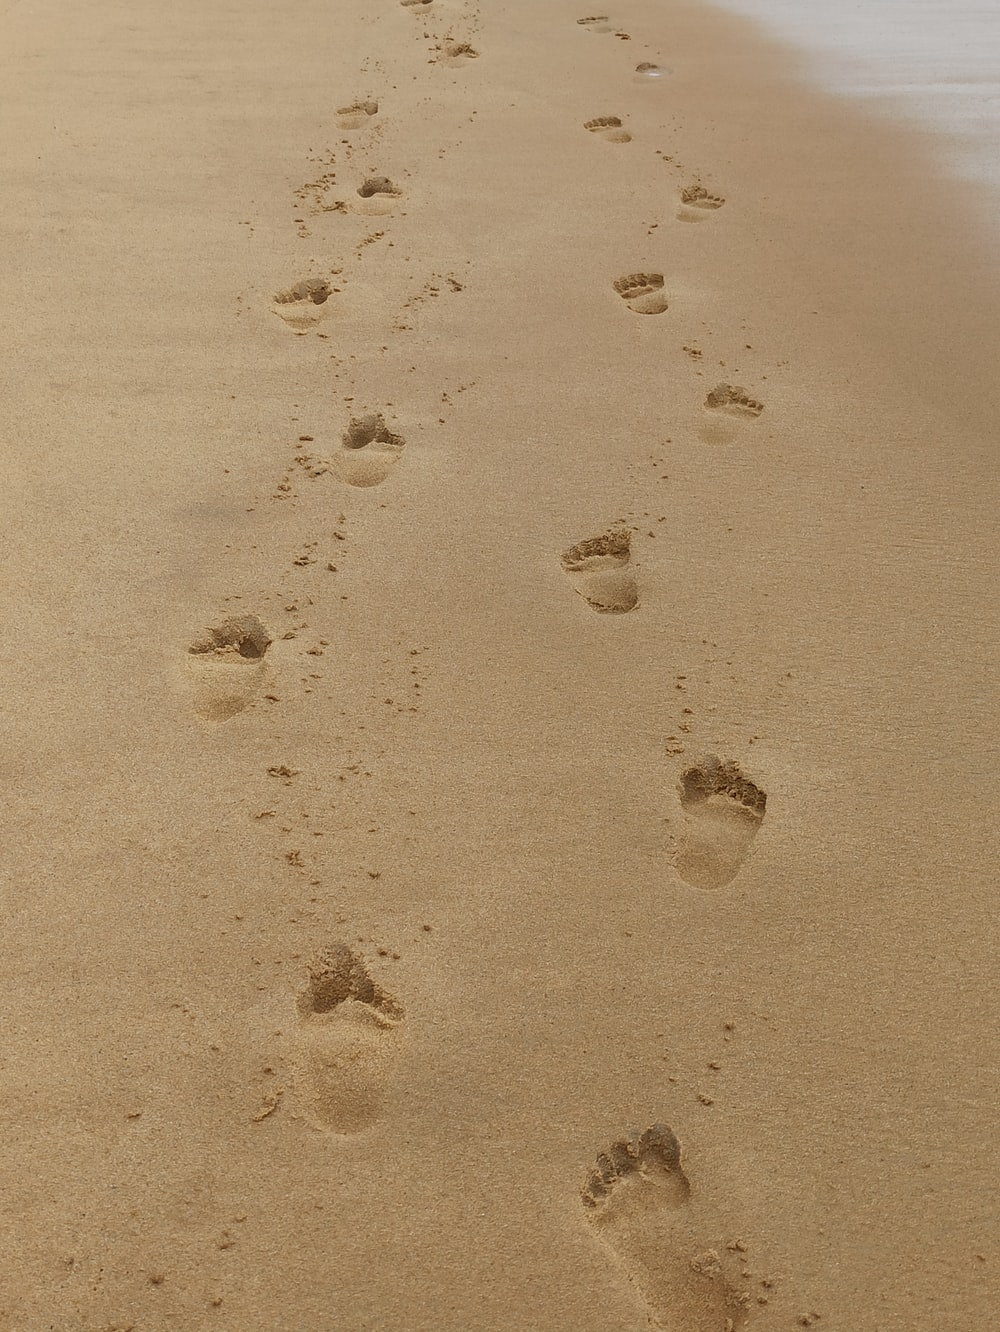 footprints on the sand during daytime